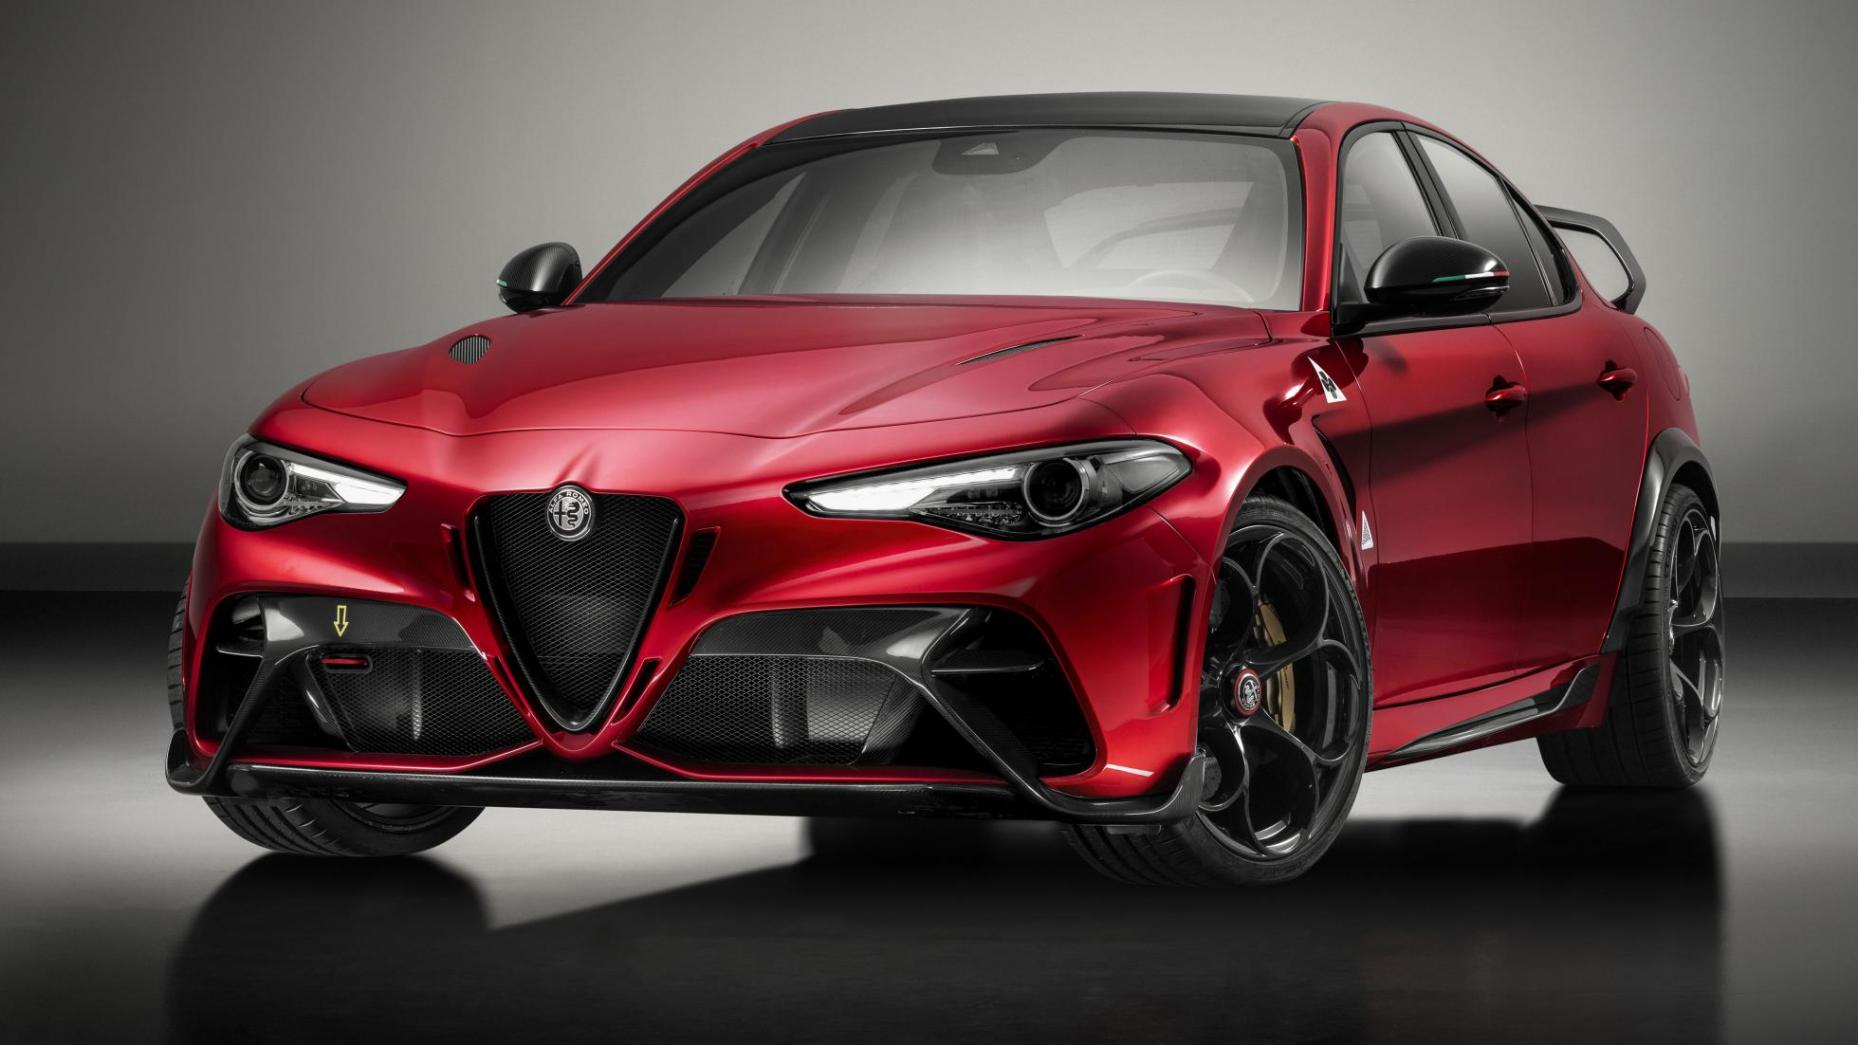 2020: Giulia GTA and GTAm